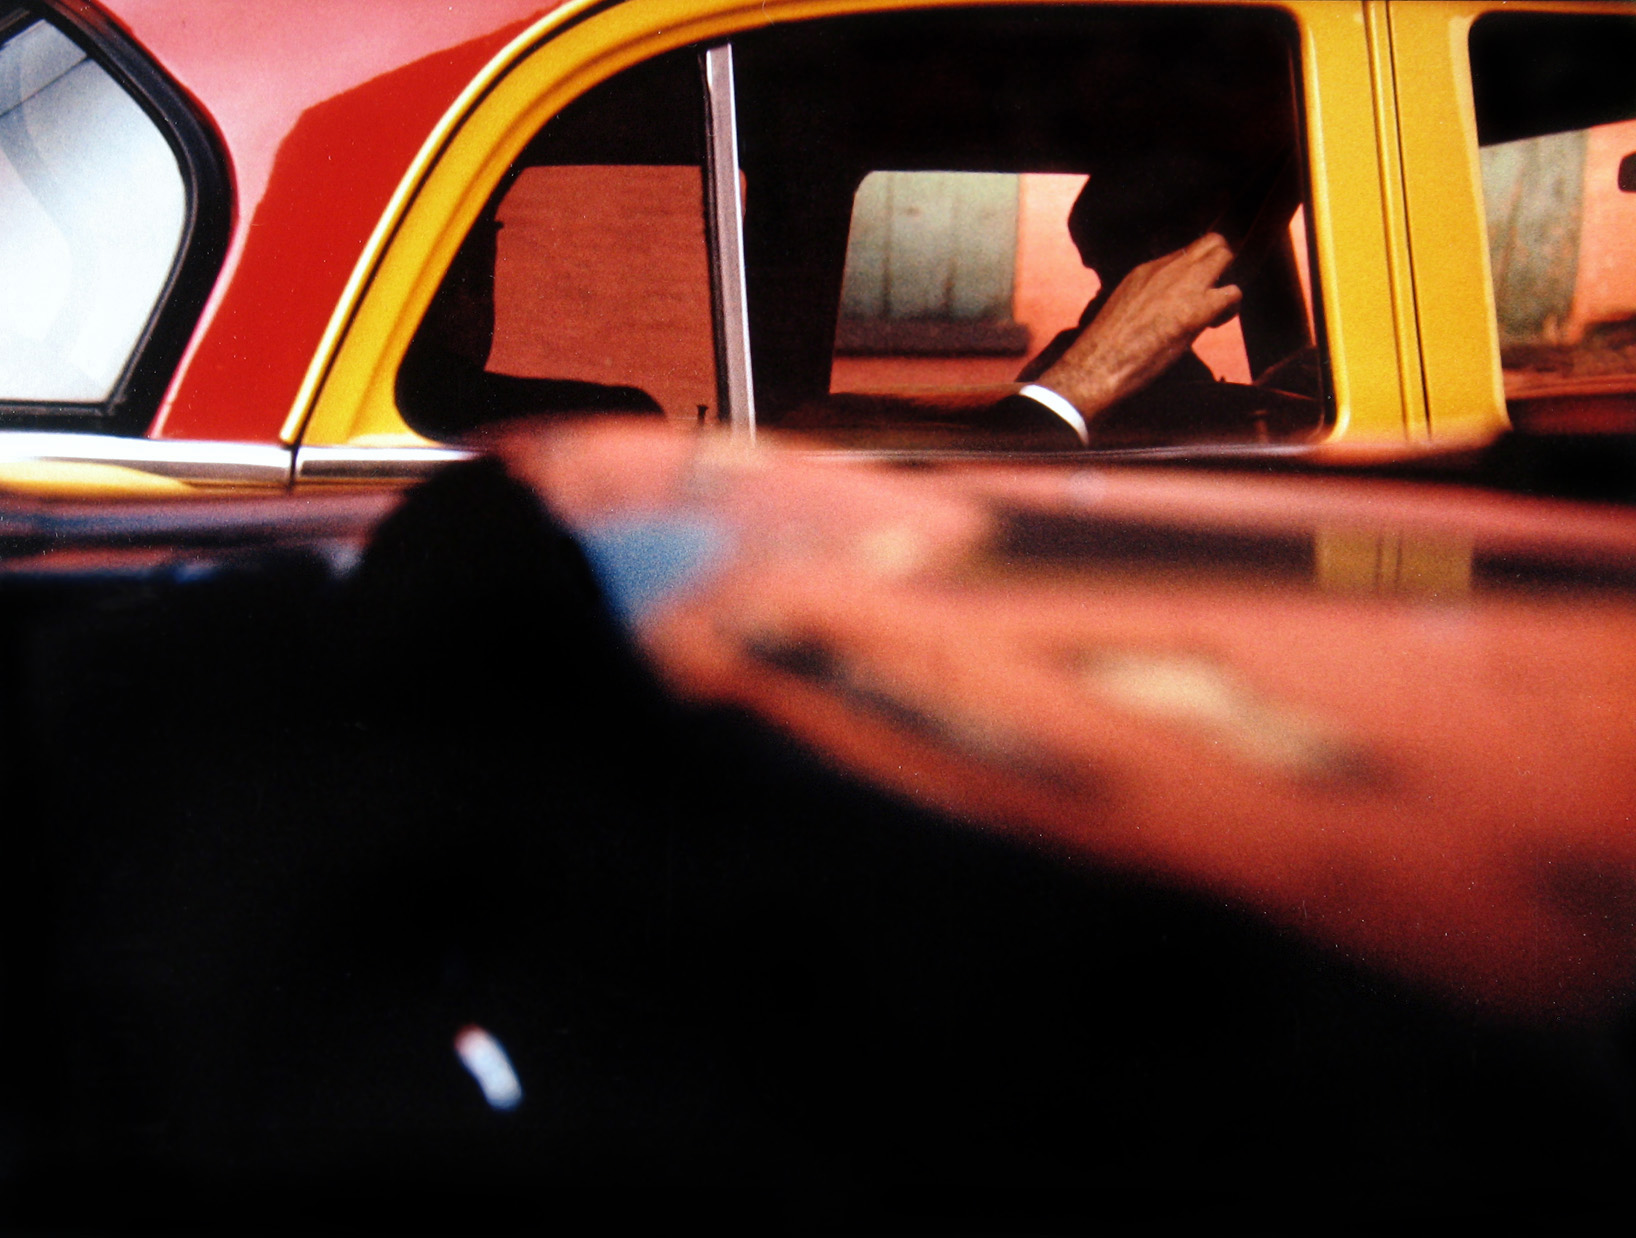 Saul Leiter Taxi, ca. 1957 © Saul Leiter Courtesy: Saul Leiter, Howard Greenberg Gallery, New York. Aus der Ausstellung SAUL LEITER - RETROSPEKTIVE im Haus der Photographie in den Deichtorhallen, 3.2.2012 - 15.4.2012.